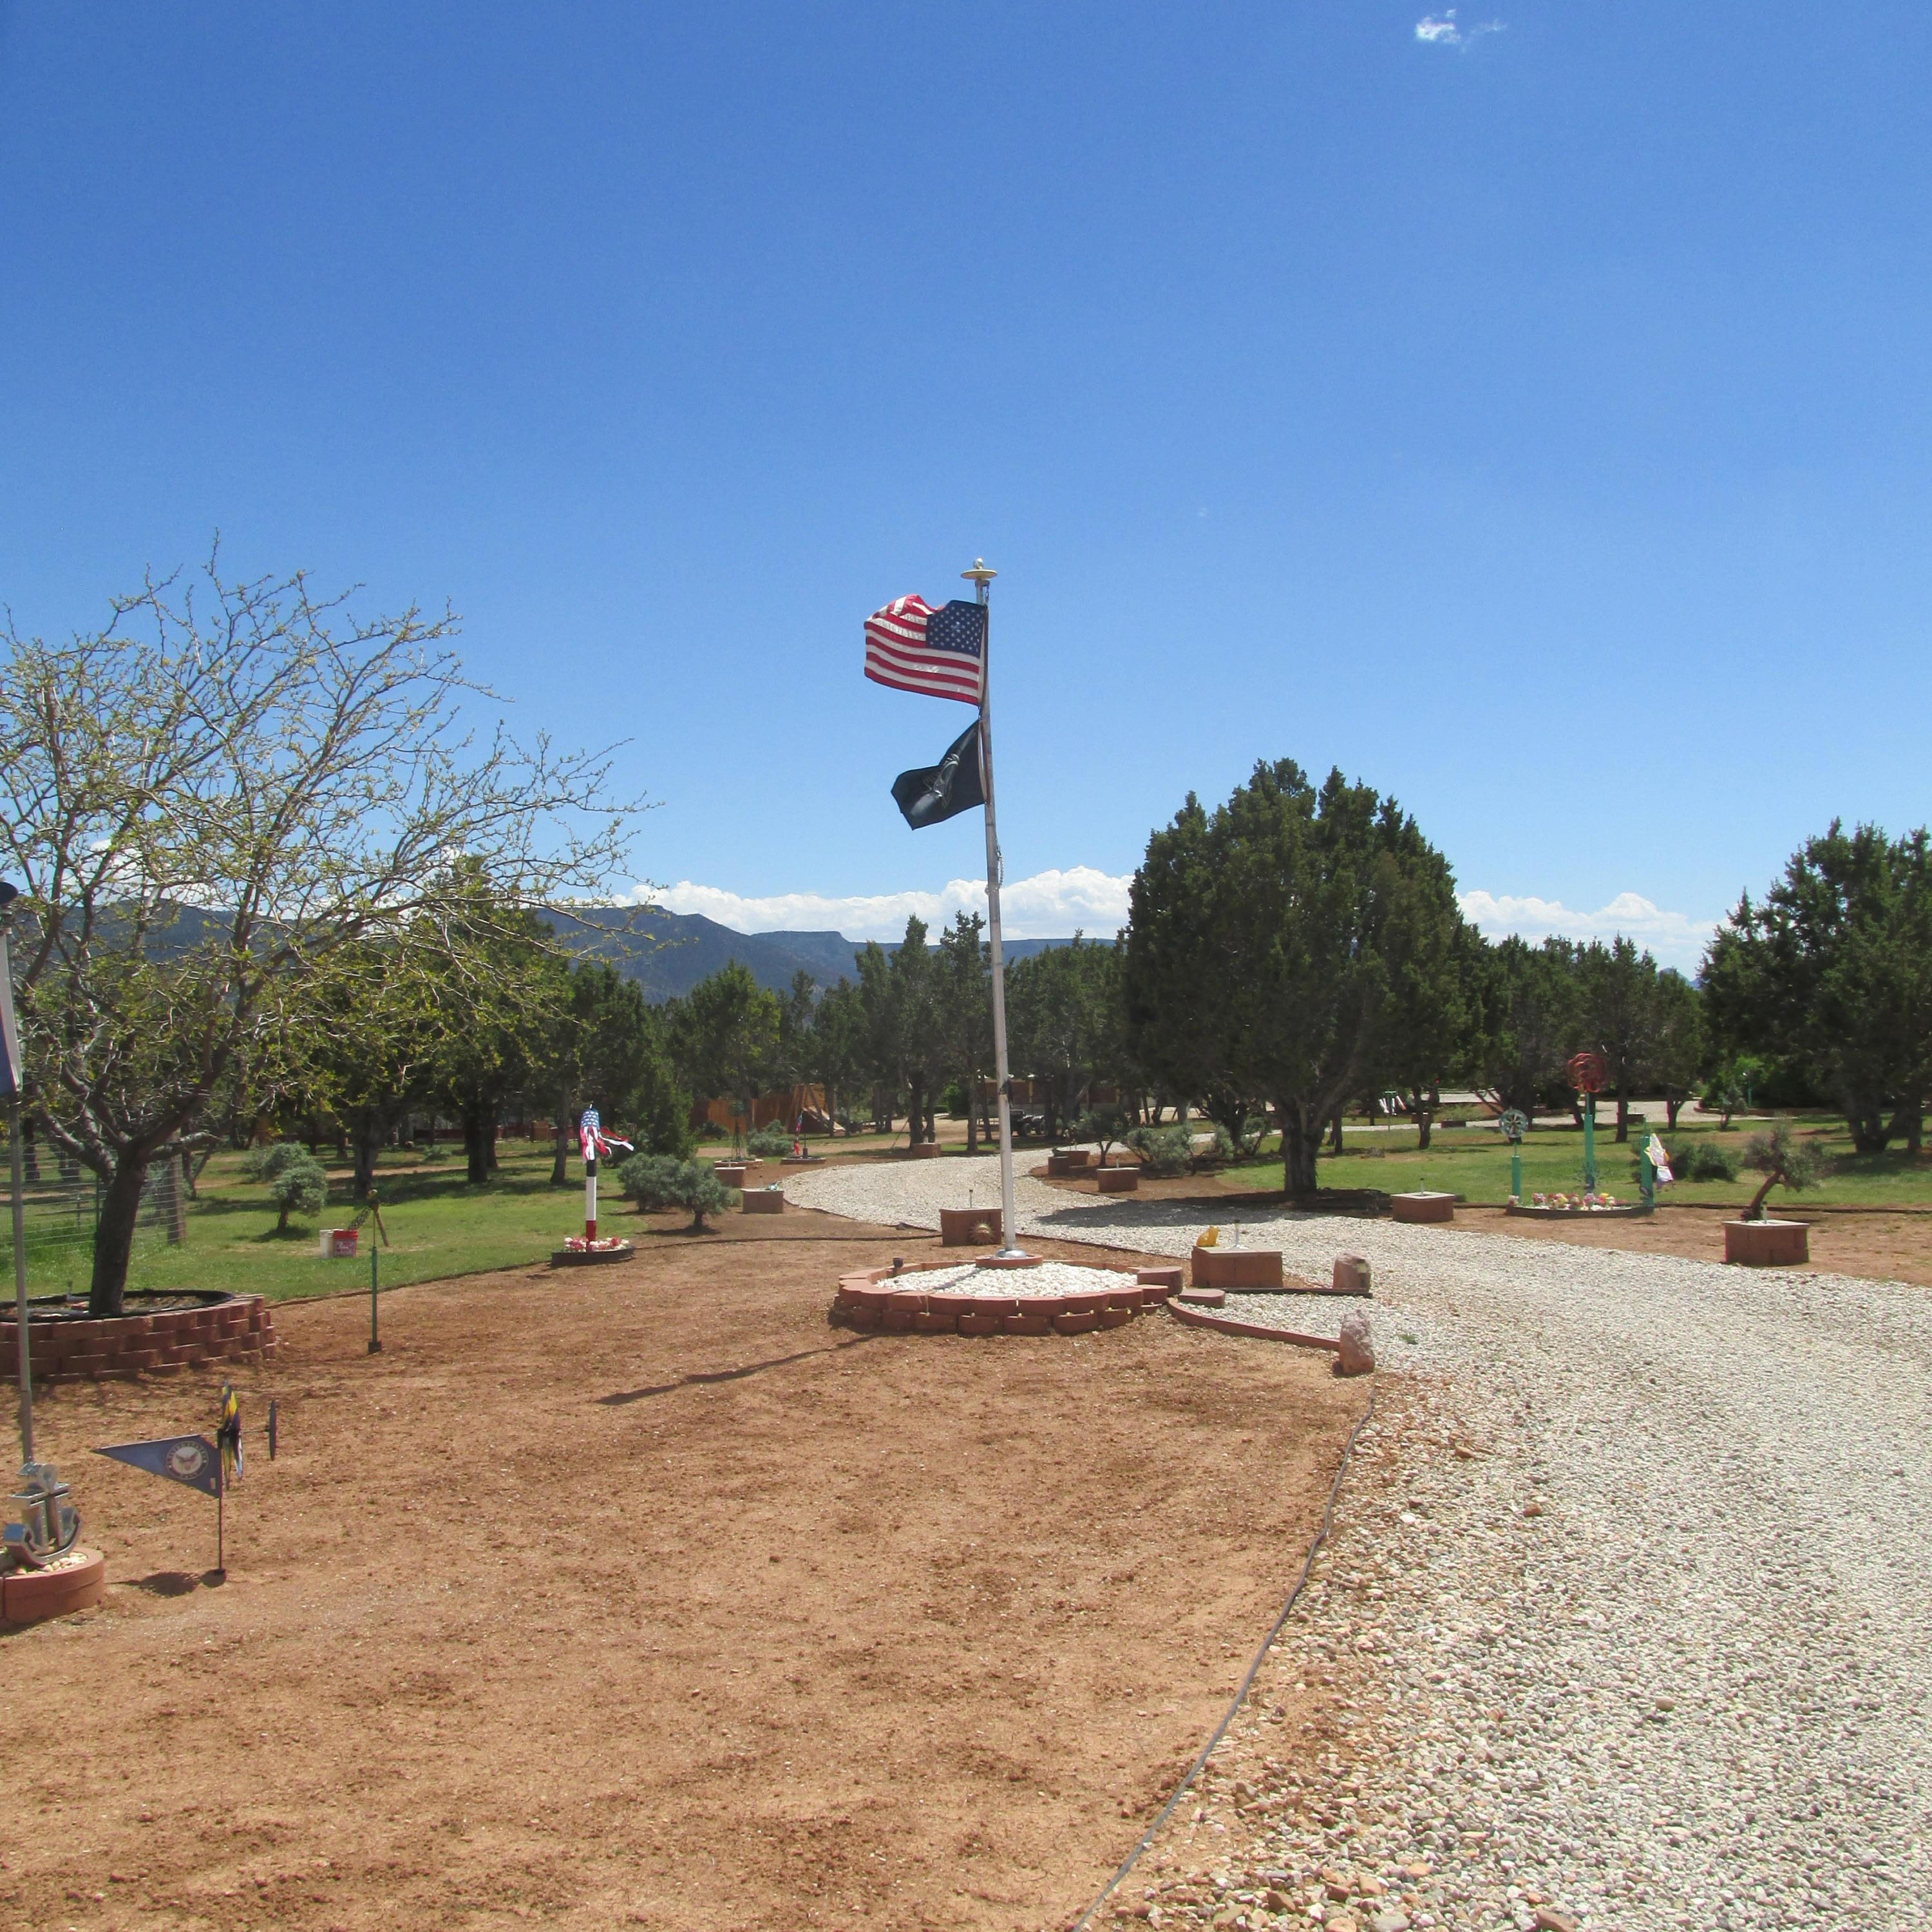 Country living with million dollar views!! This well keep home has so many extra from radiant floor heating to a back electrical generator system. This home sets on 18.82 acres, 15 plus acres have been put into green belt. The property overlooks the popular Kolob five finger. This home and property offers a large private work shop area, a green house and garden area, covered horse stalls